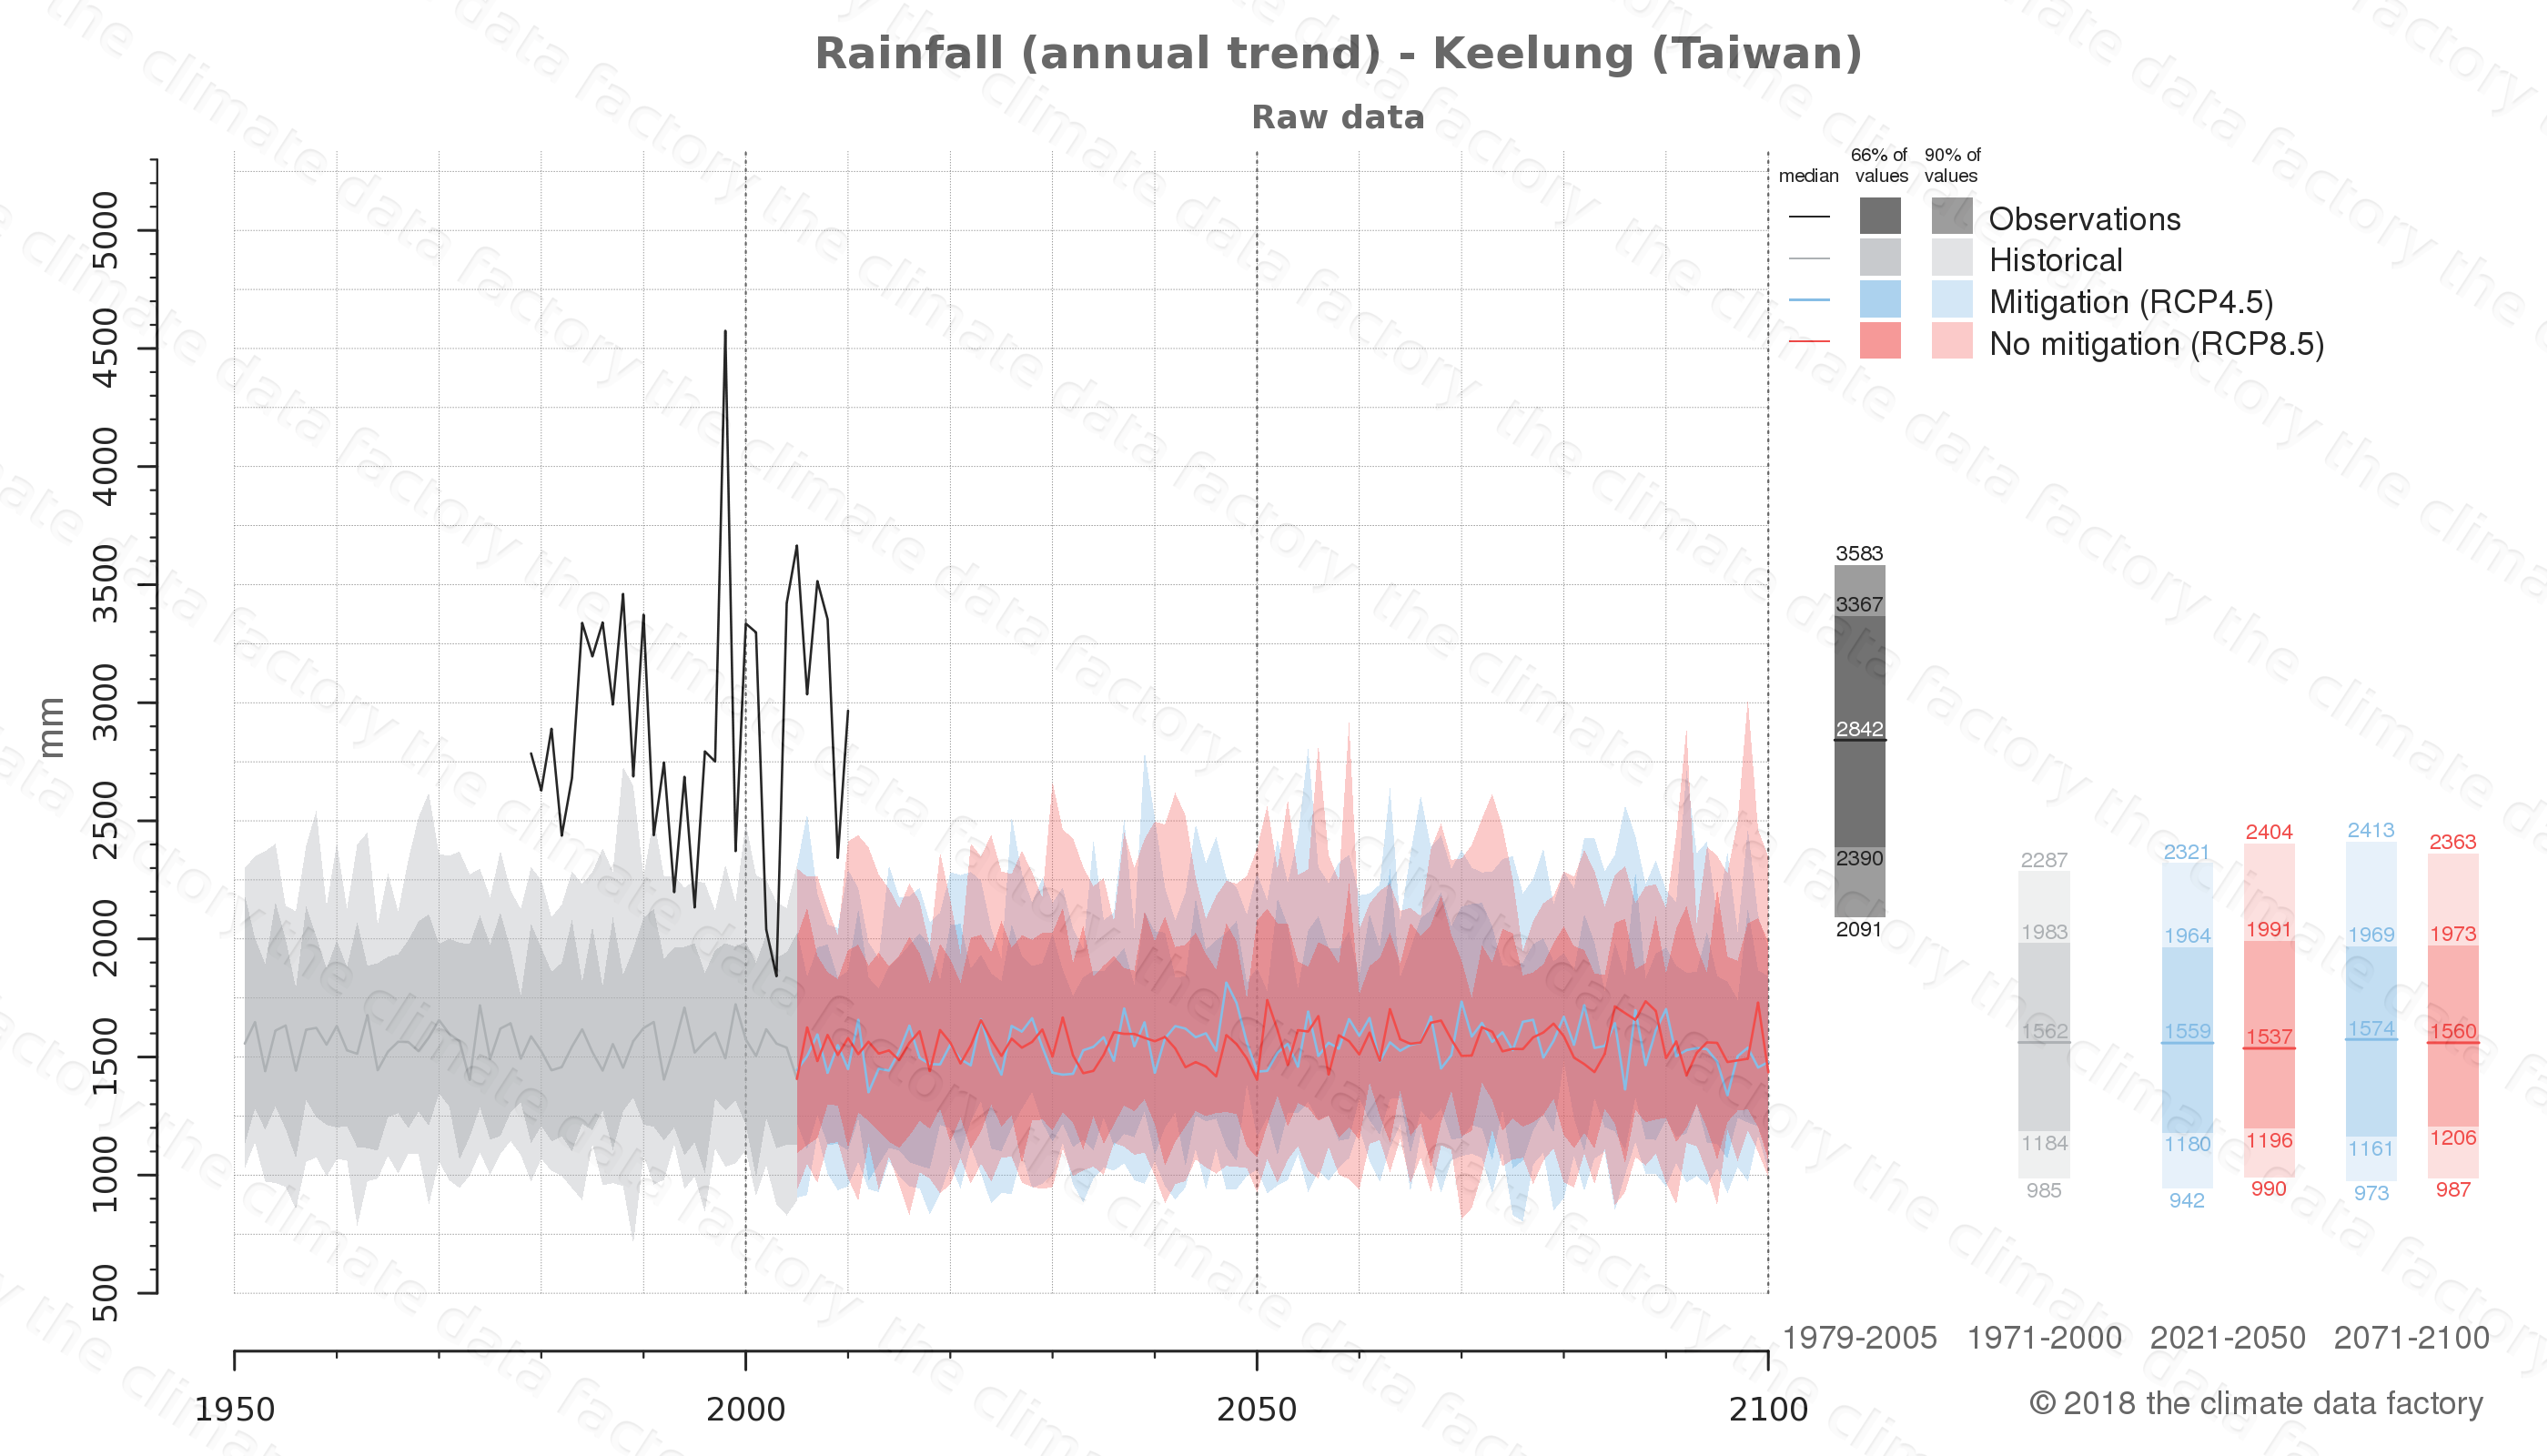 climate change data policy adaptation climate graph city data rainfall keelung taiwan